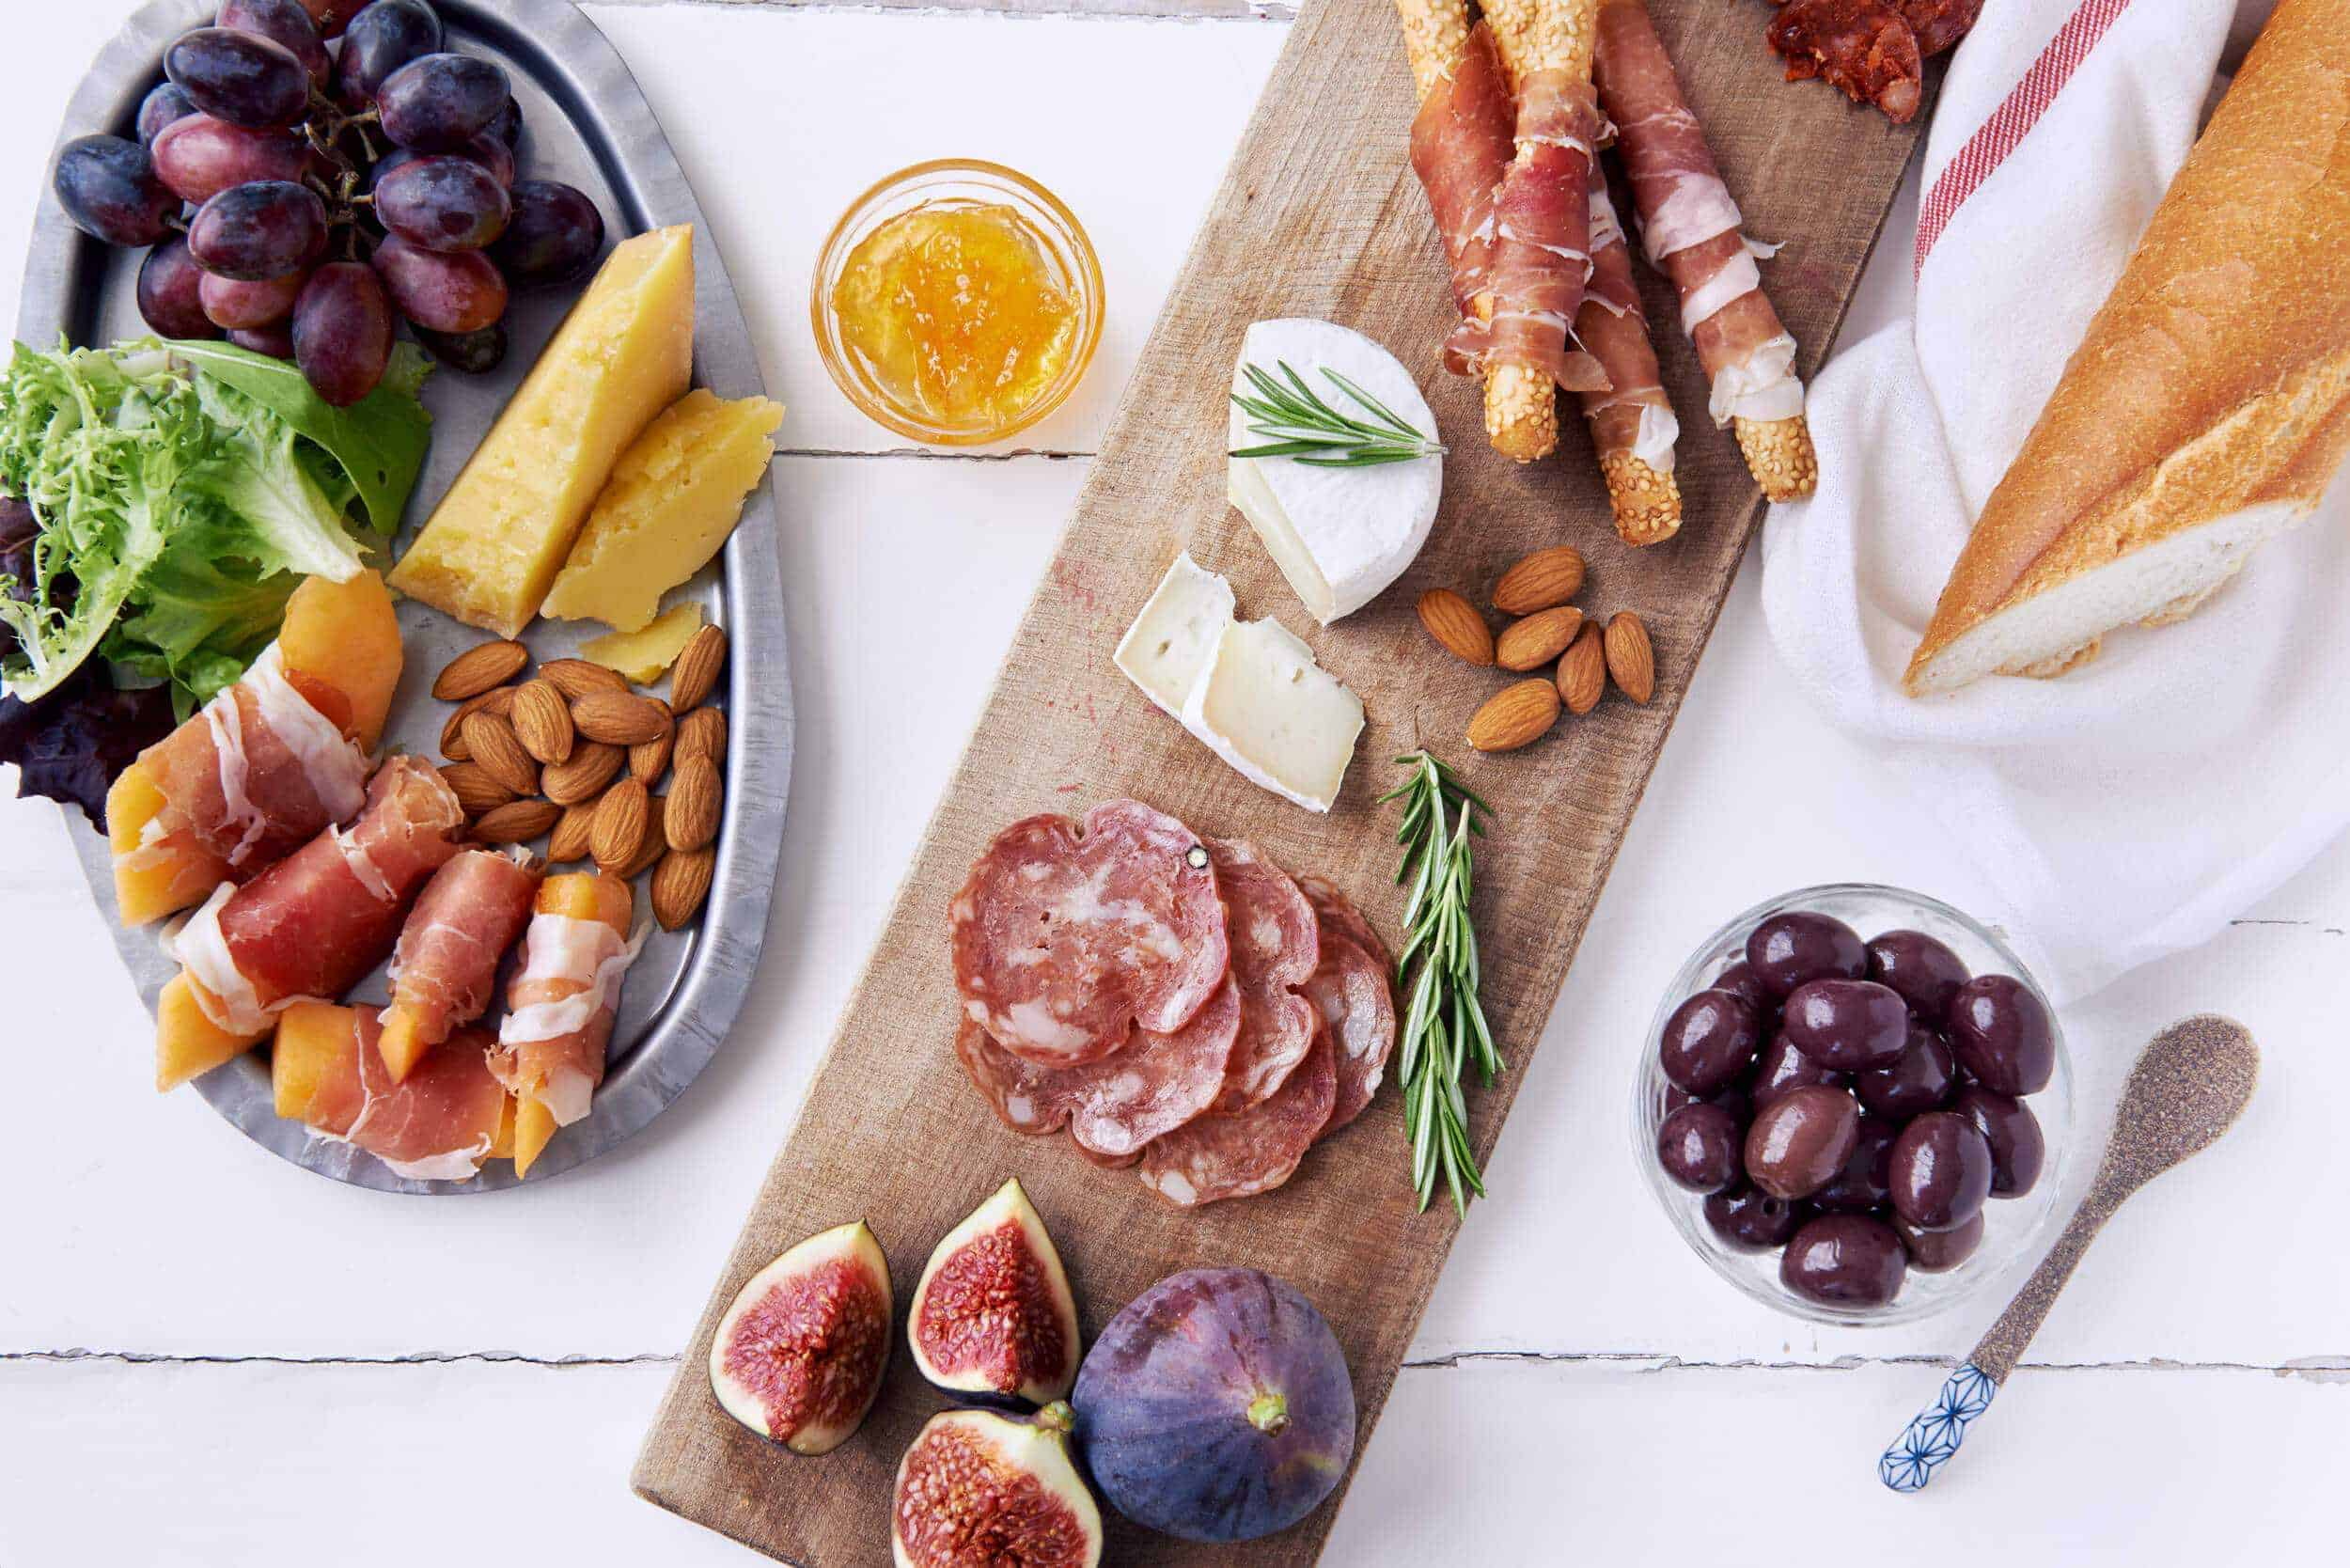 how to make cheese charcuterie board tutorial instructions create & How To Create a Cheese \u0026 Charcuterie Board - The Daring Gourmet